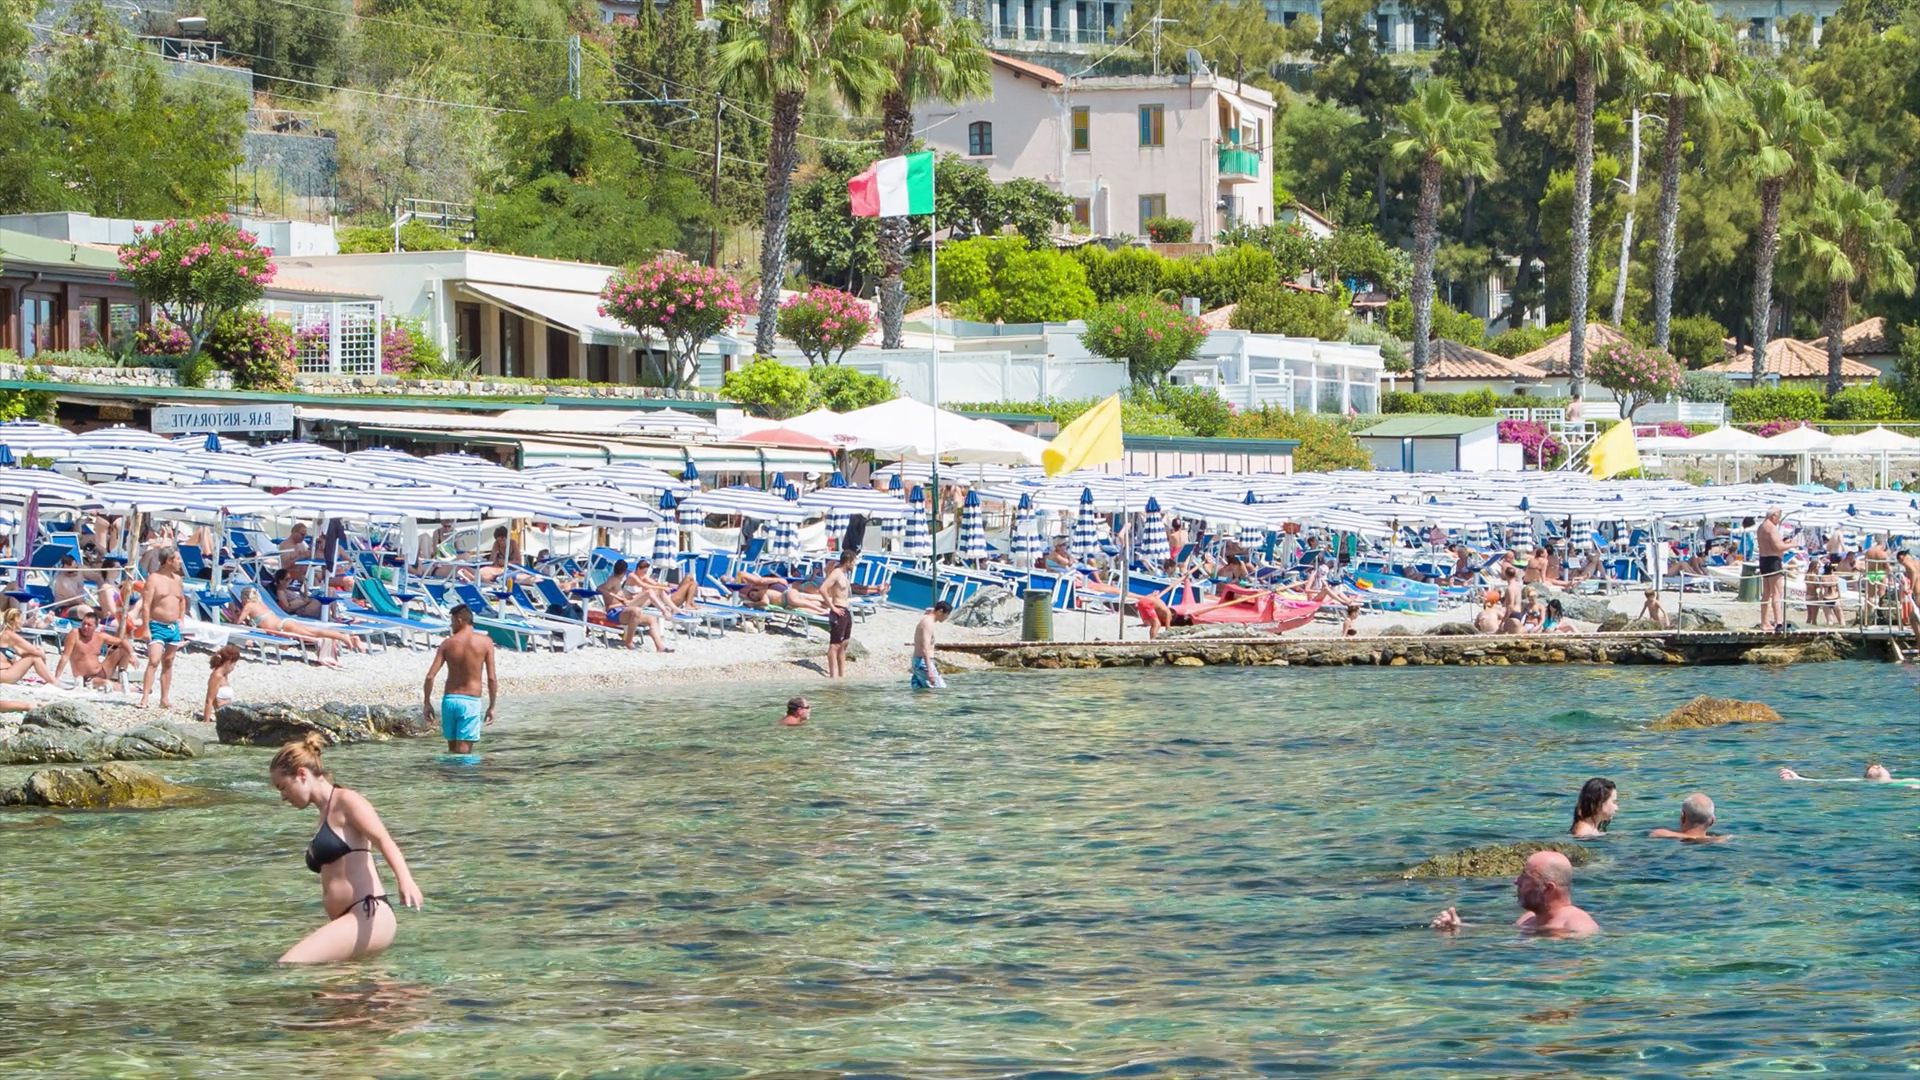 Bella Beach Umbrellas Inside Most Recently Released Taormina Sicily Popular Isola Bella Beachfront With Visitors Swimming And Enjoying Umbrellas And Chairs On The Famous Italian Resort Town Beach Stock (View 16 of 20)